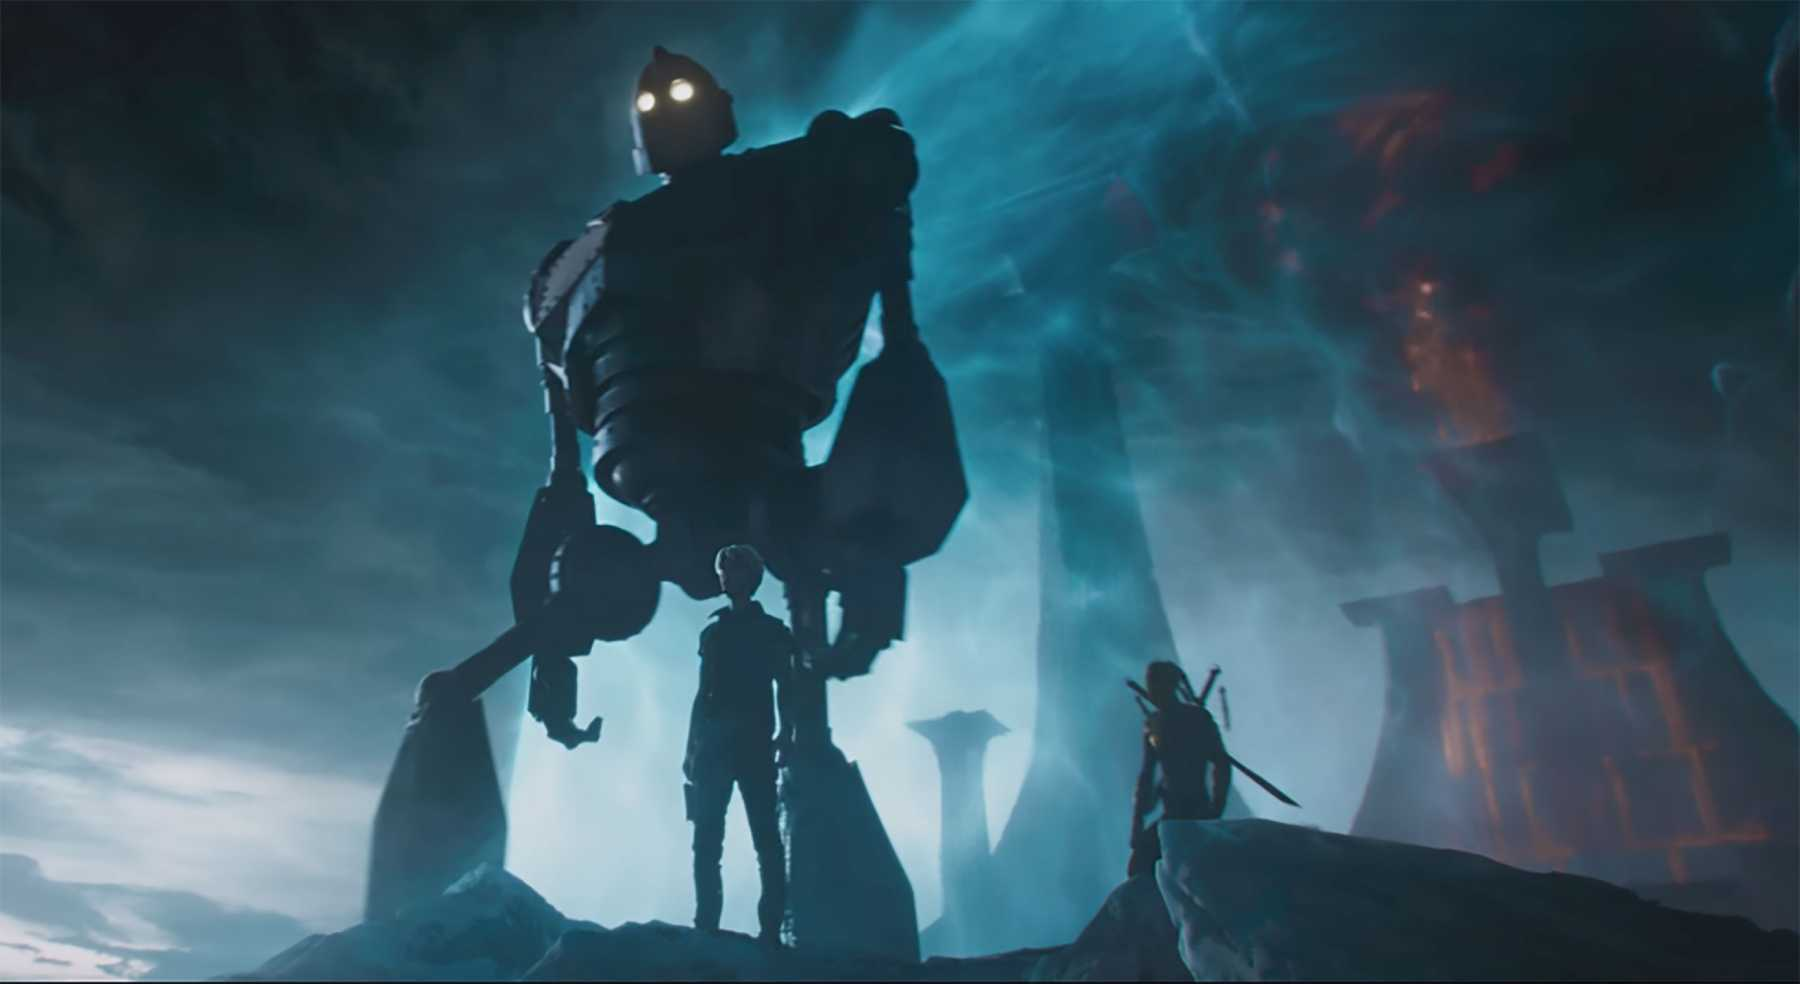 Ready Player One: New Trailer Talk | Ready Player One